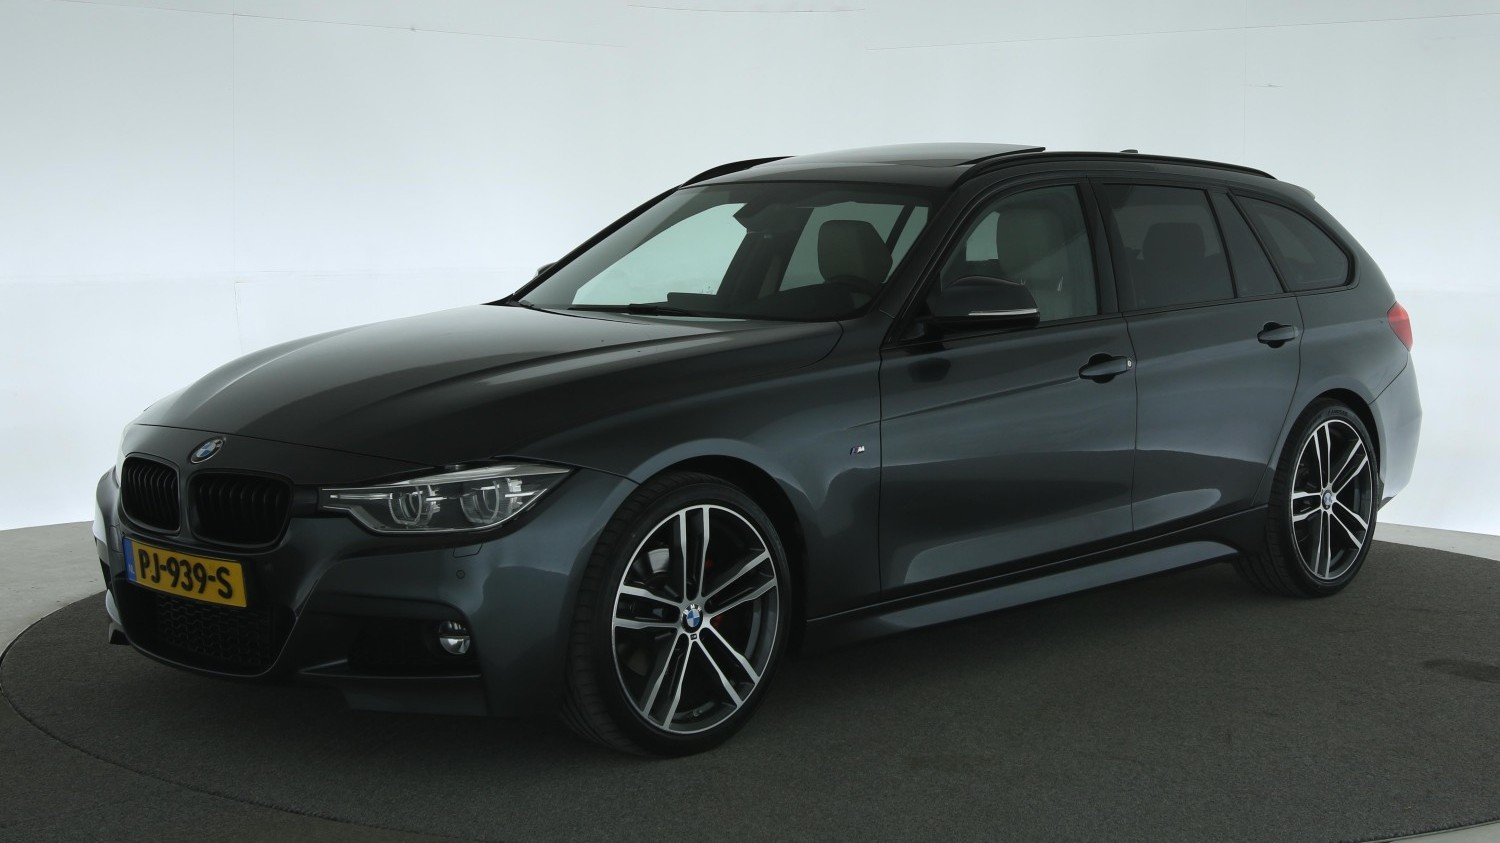 BMW 3-serie Station 2016 PJ-939-S 1